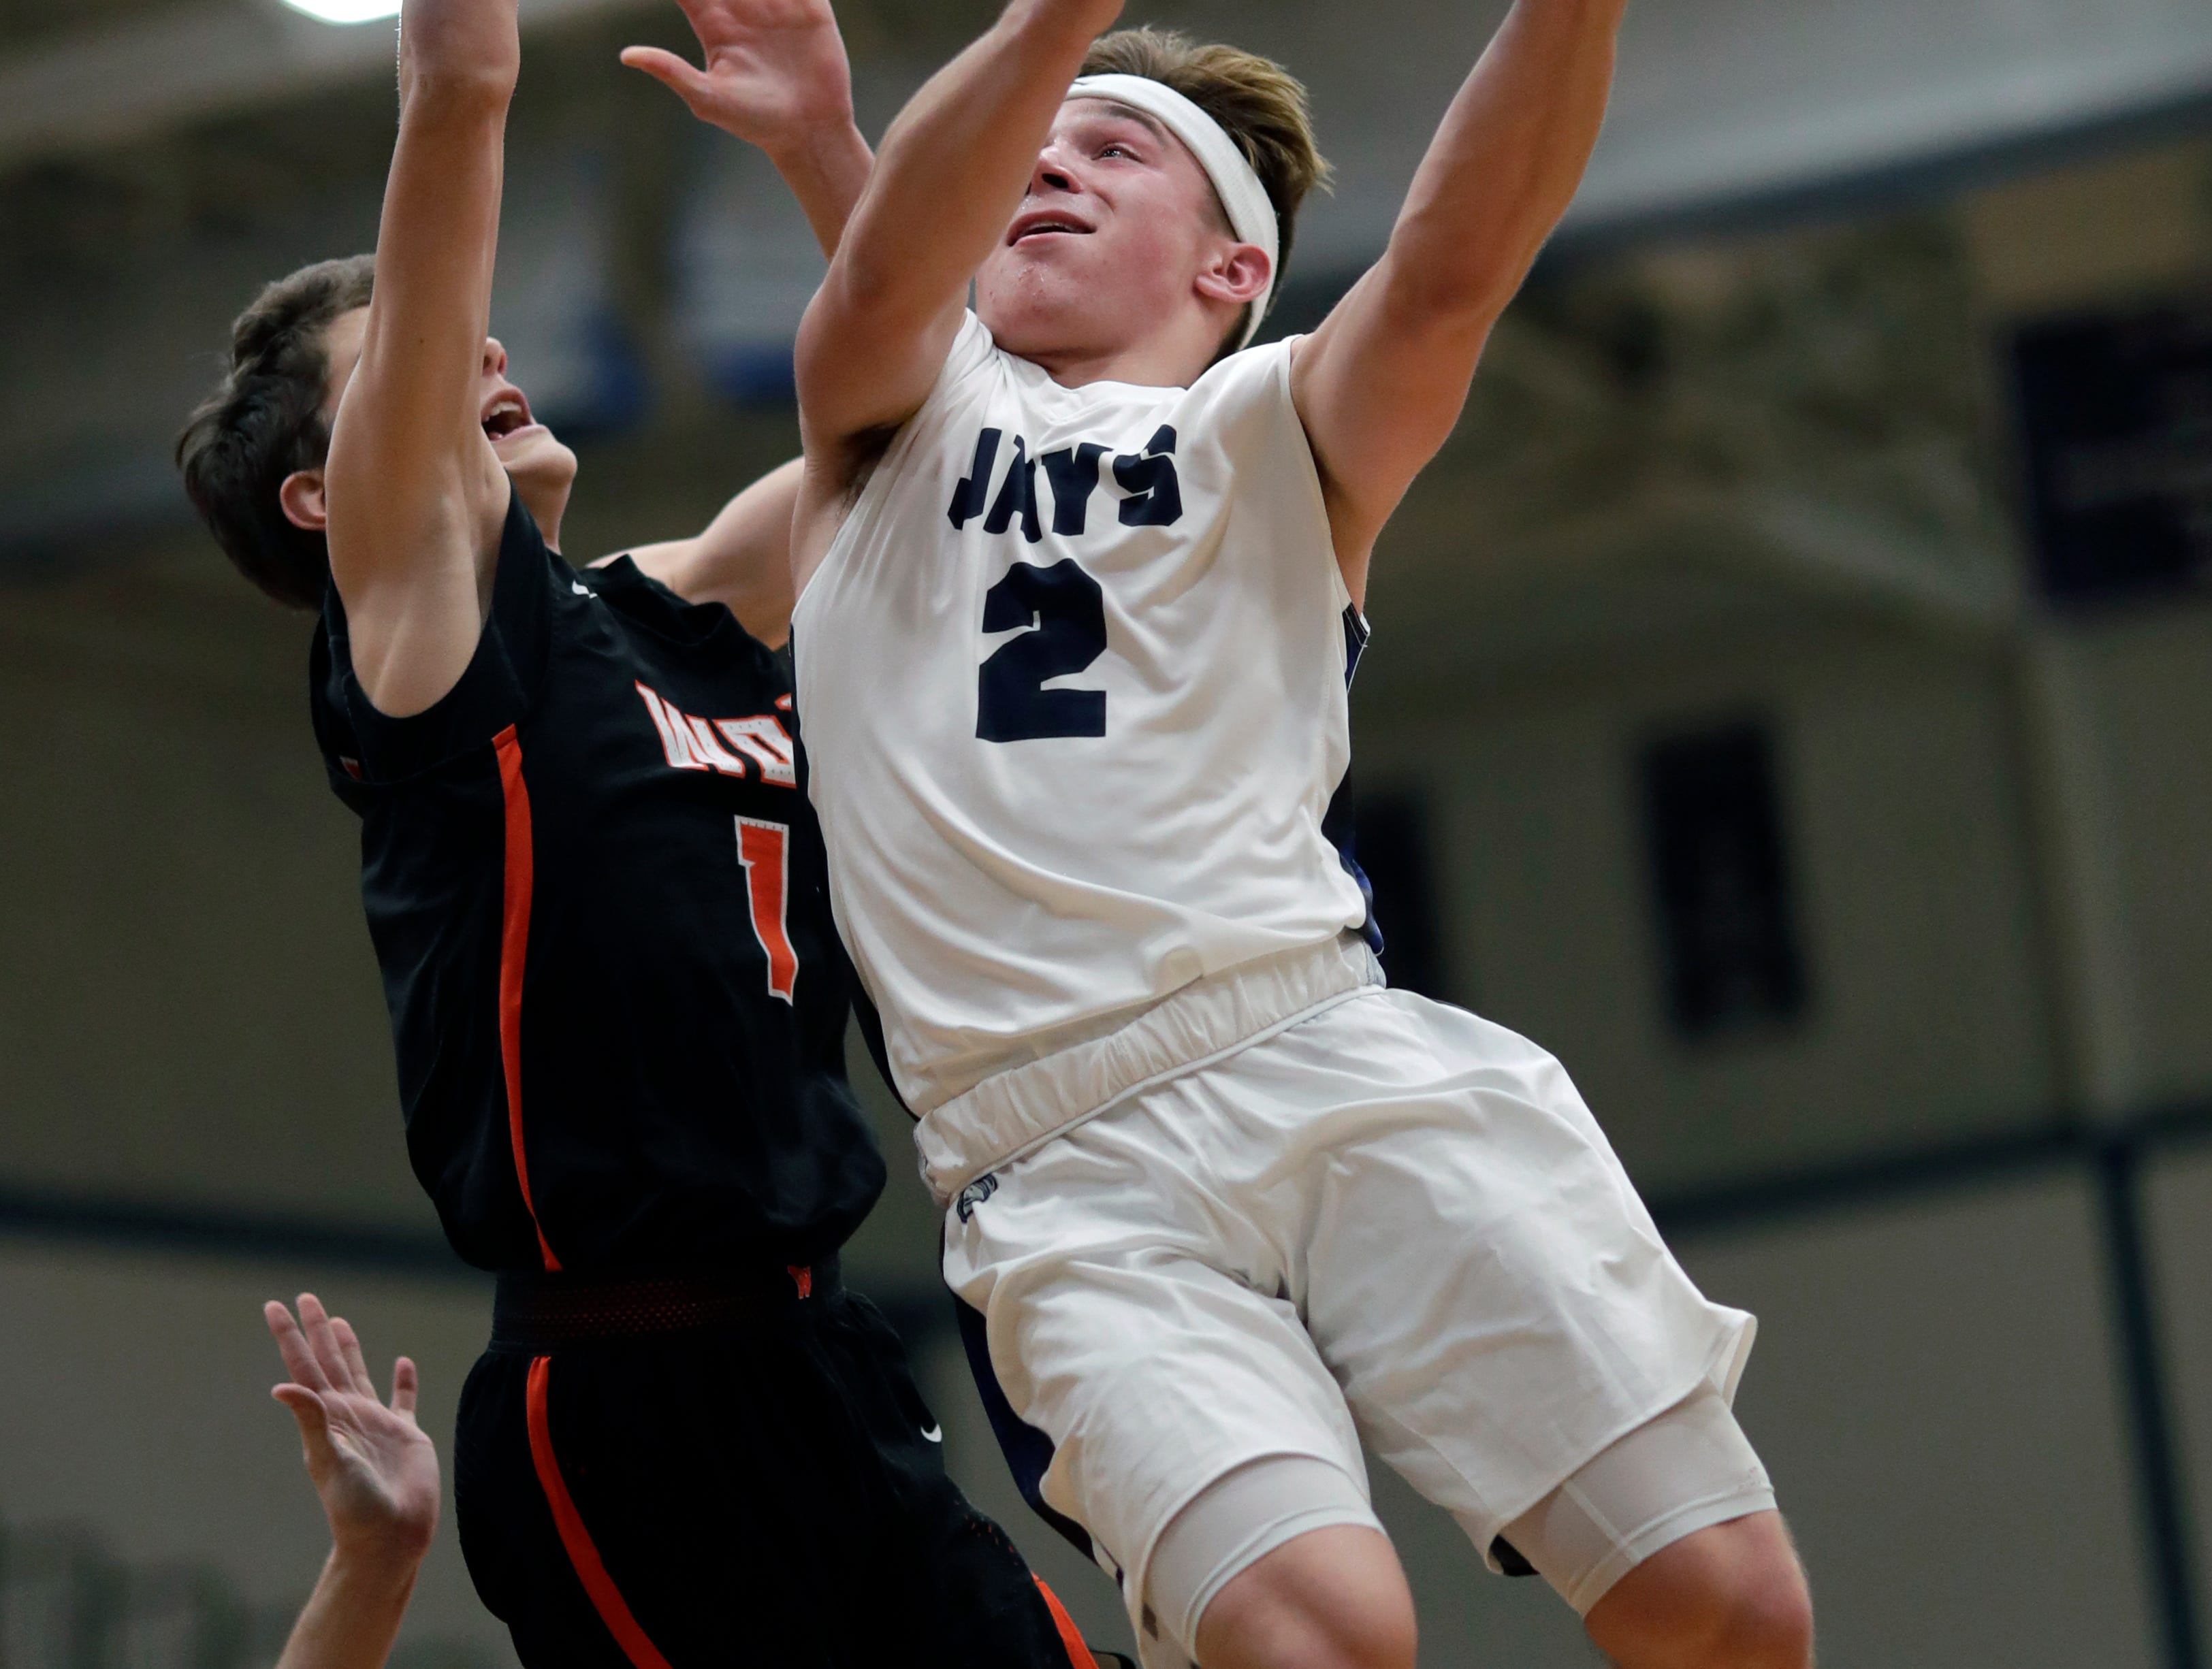 Menasha High School's Tristin DeBryin (2) drives to the basket against West De Pere High School's Nate Jensen (1) during their boys basketball game Tuesday, December 11, 2018, in Menasha, Wis. Dan Powers/USA TODAY NETWORK-Wisconsin